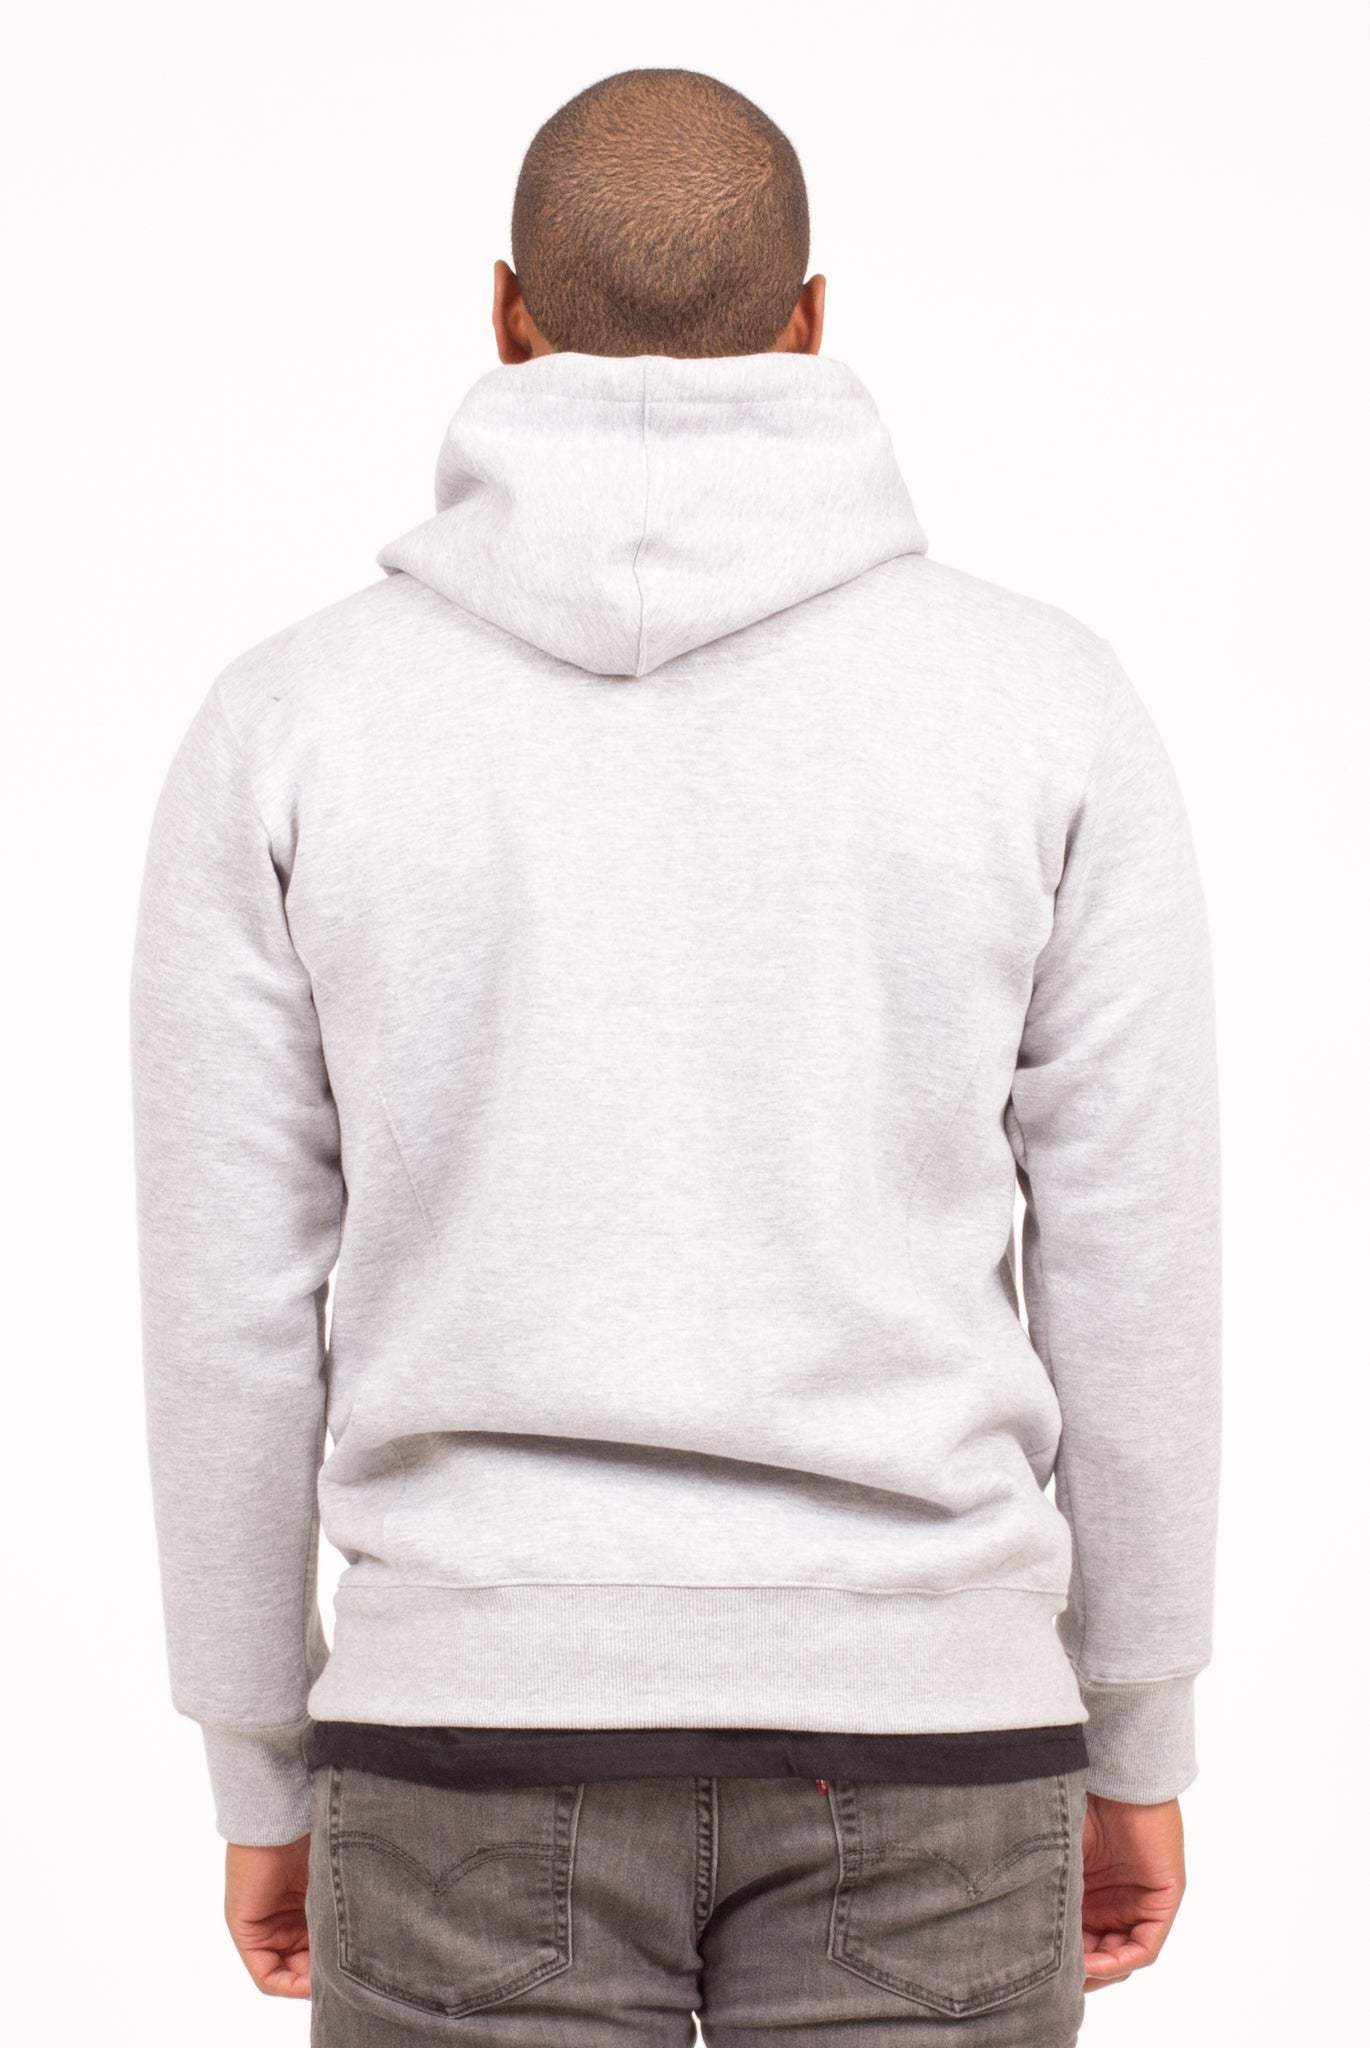 STORM FLAP HOODIE IN HEATHER GREY OR BLACK | Poor Little Rich Boy Clothing